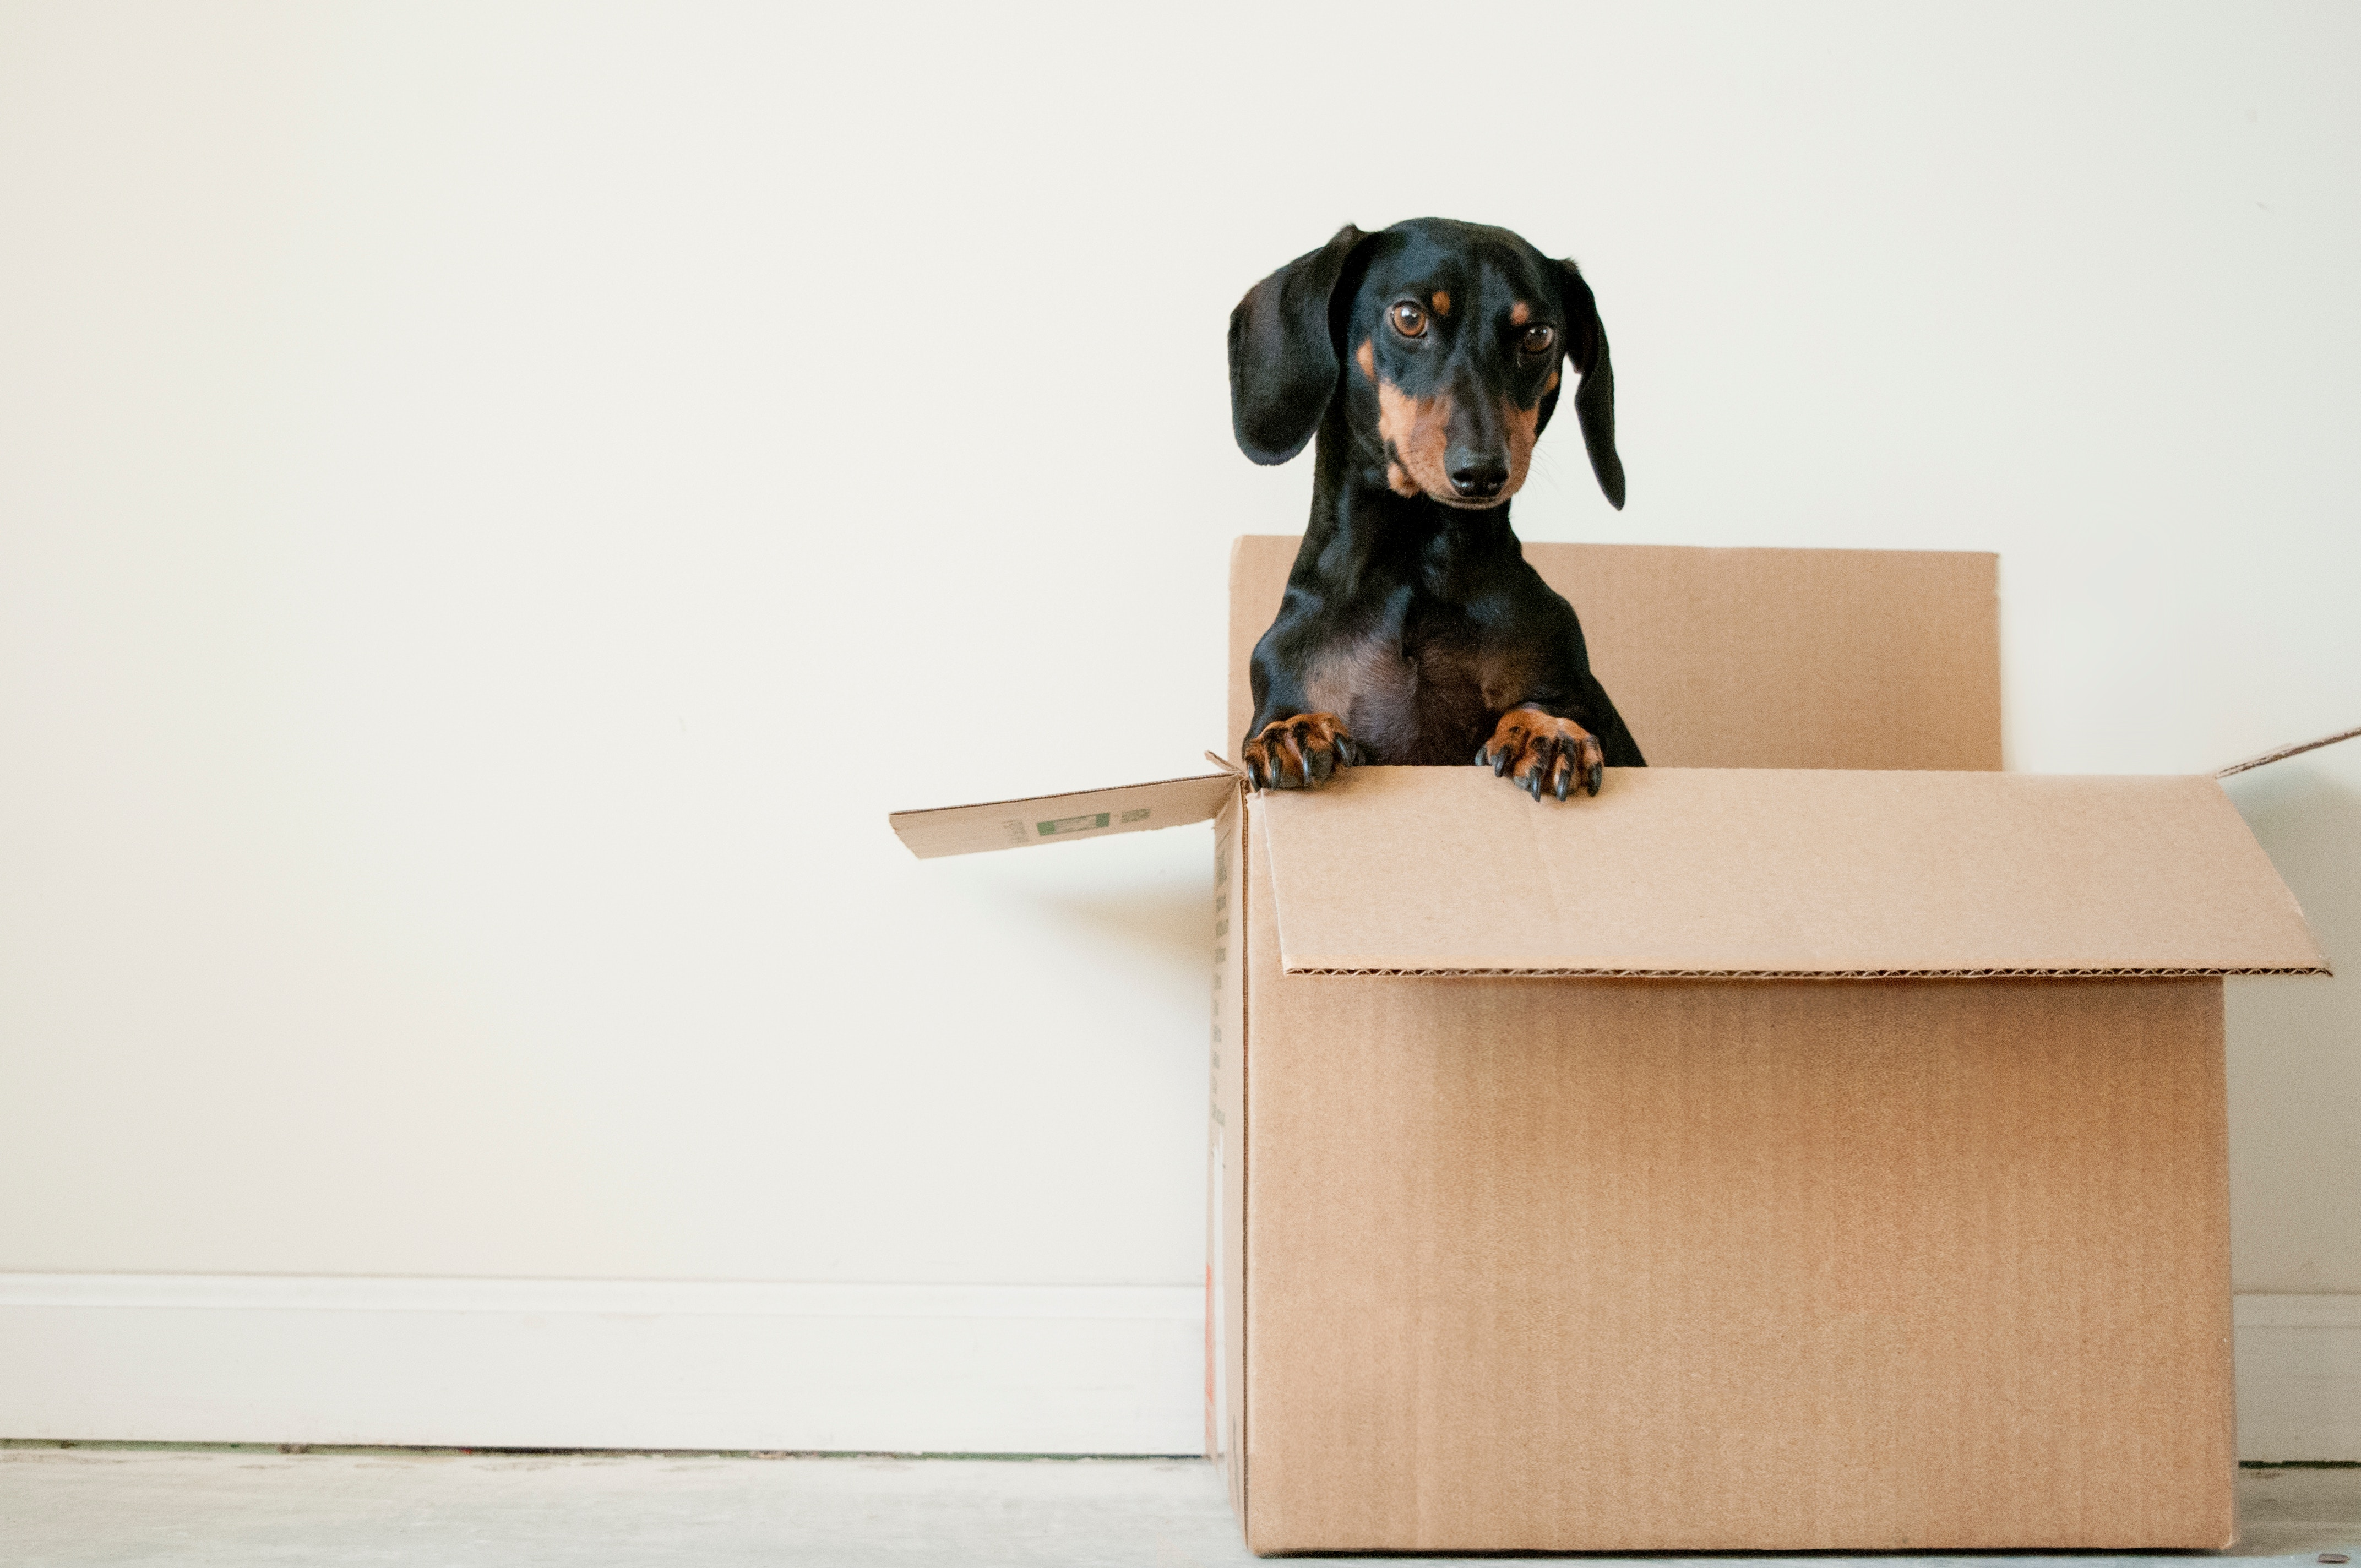 10 Ways To Save Money on Moving (And Make It Suck Less)